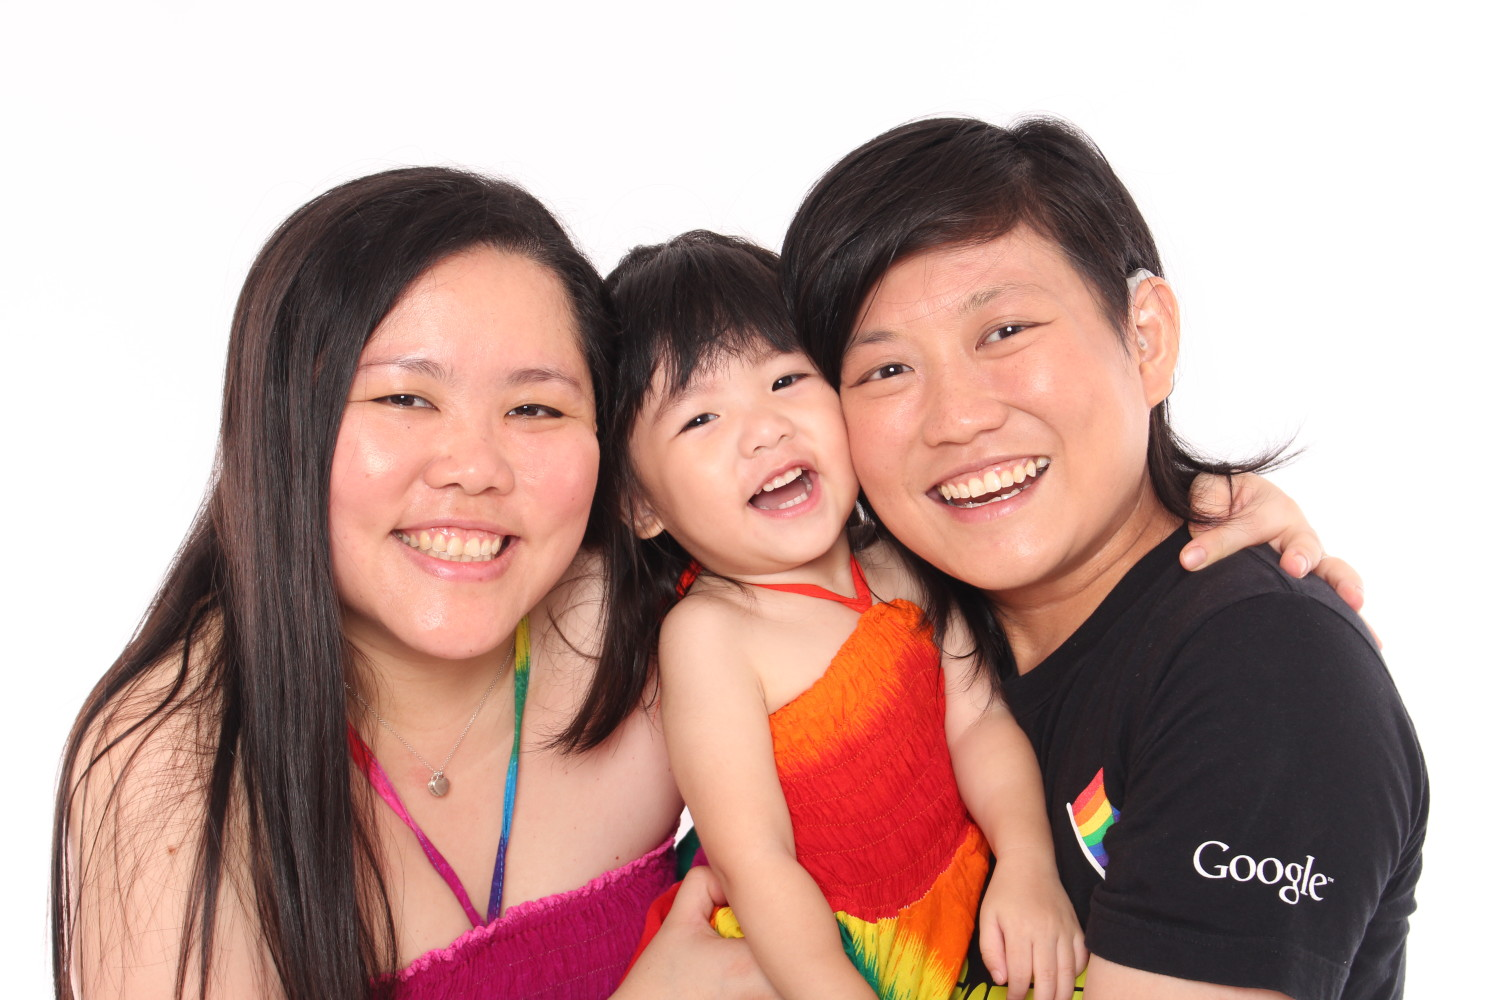 A blog about same-sex parenting, relationships & life hacking in Singapore